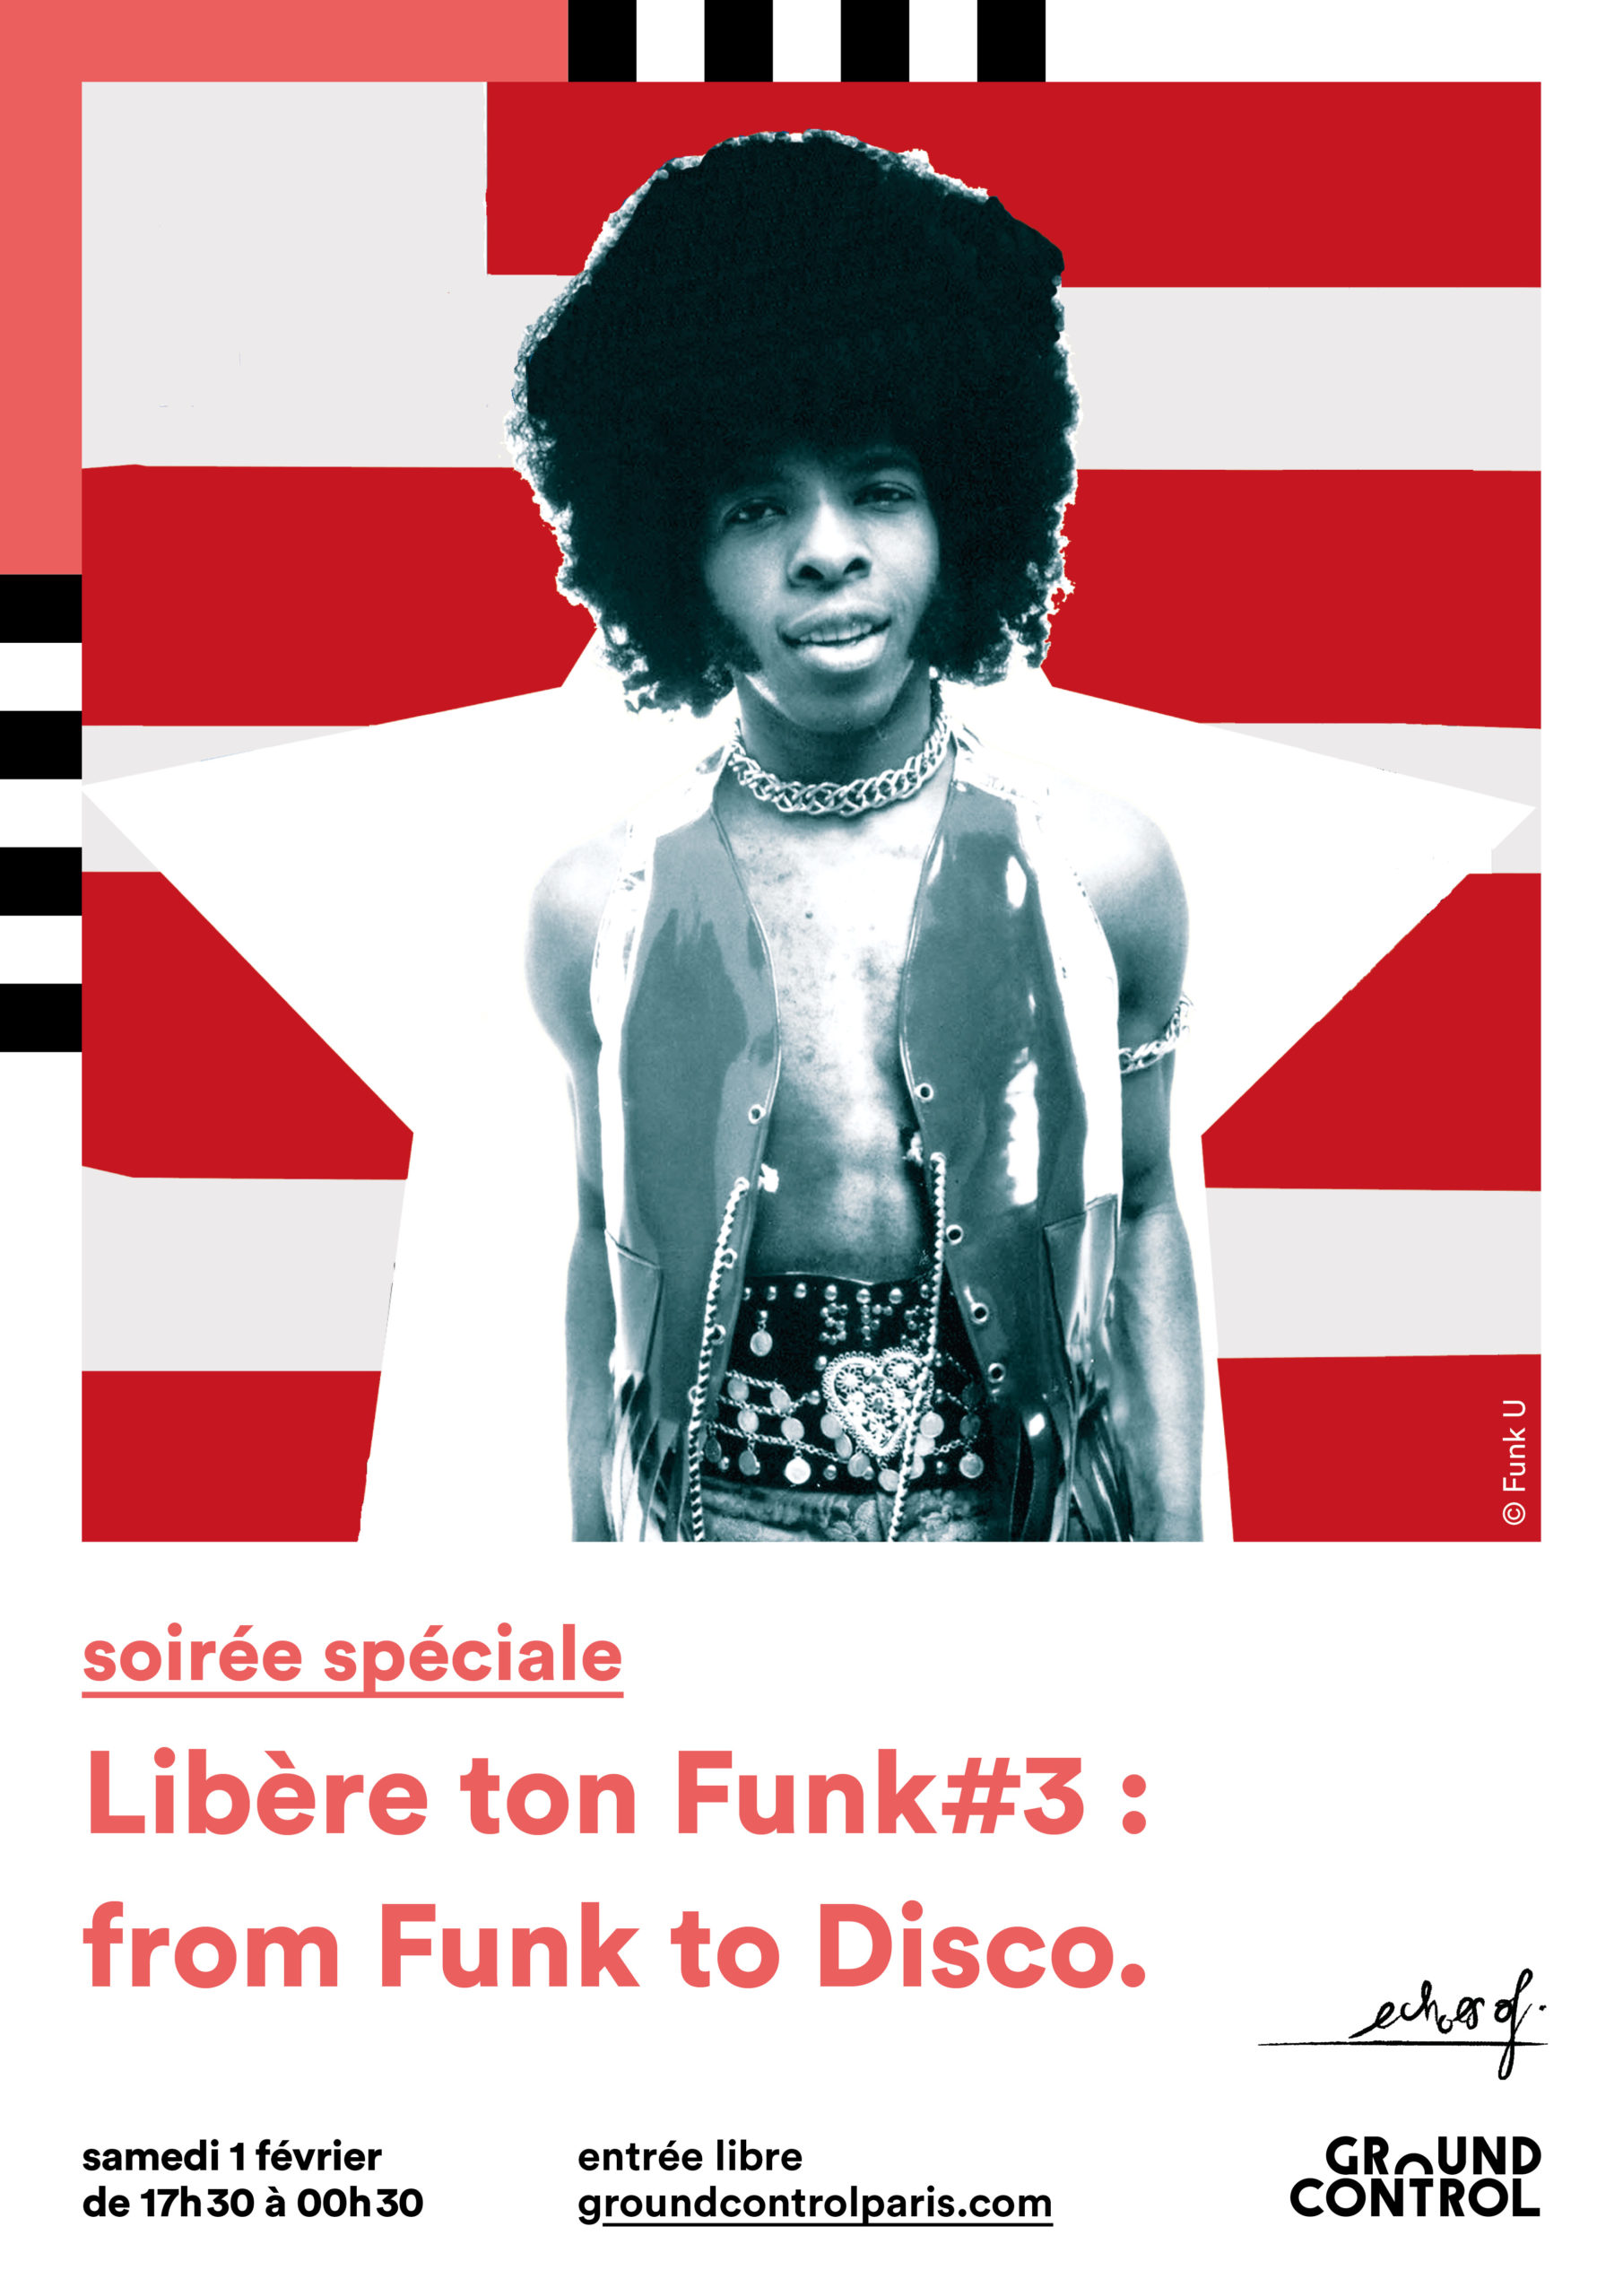 Libère ton funk#3 : from Funk to Disco.